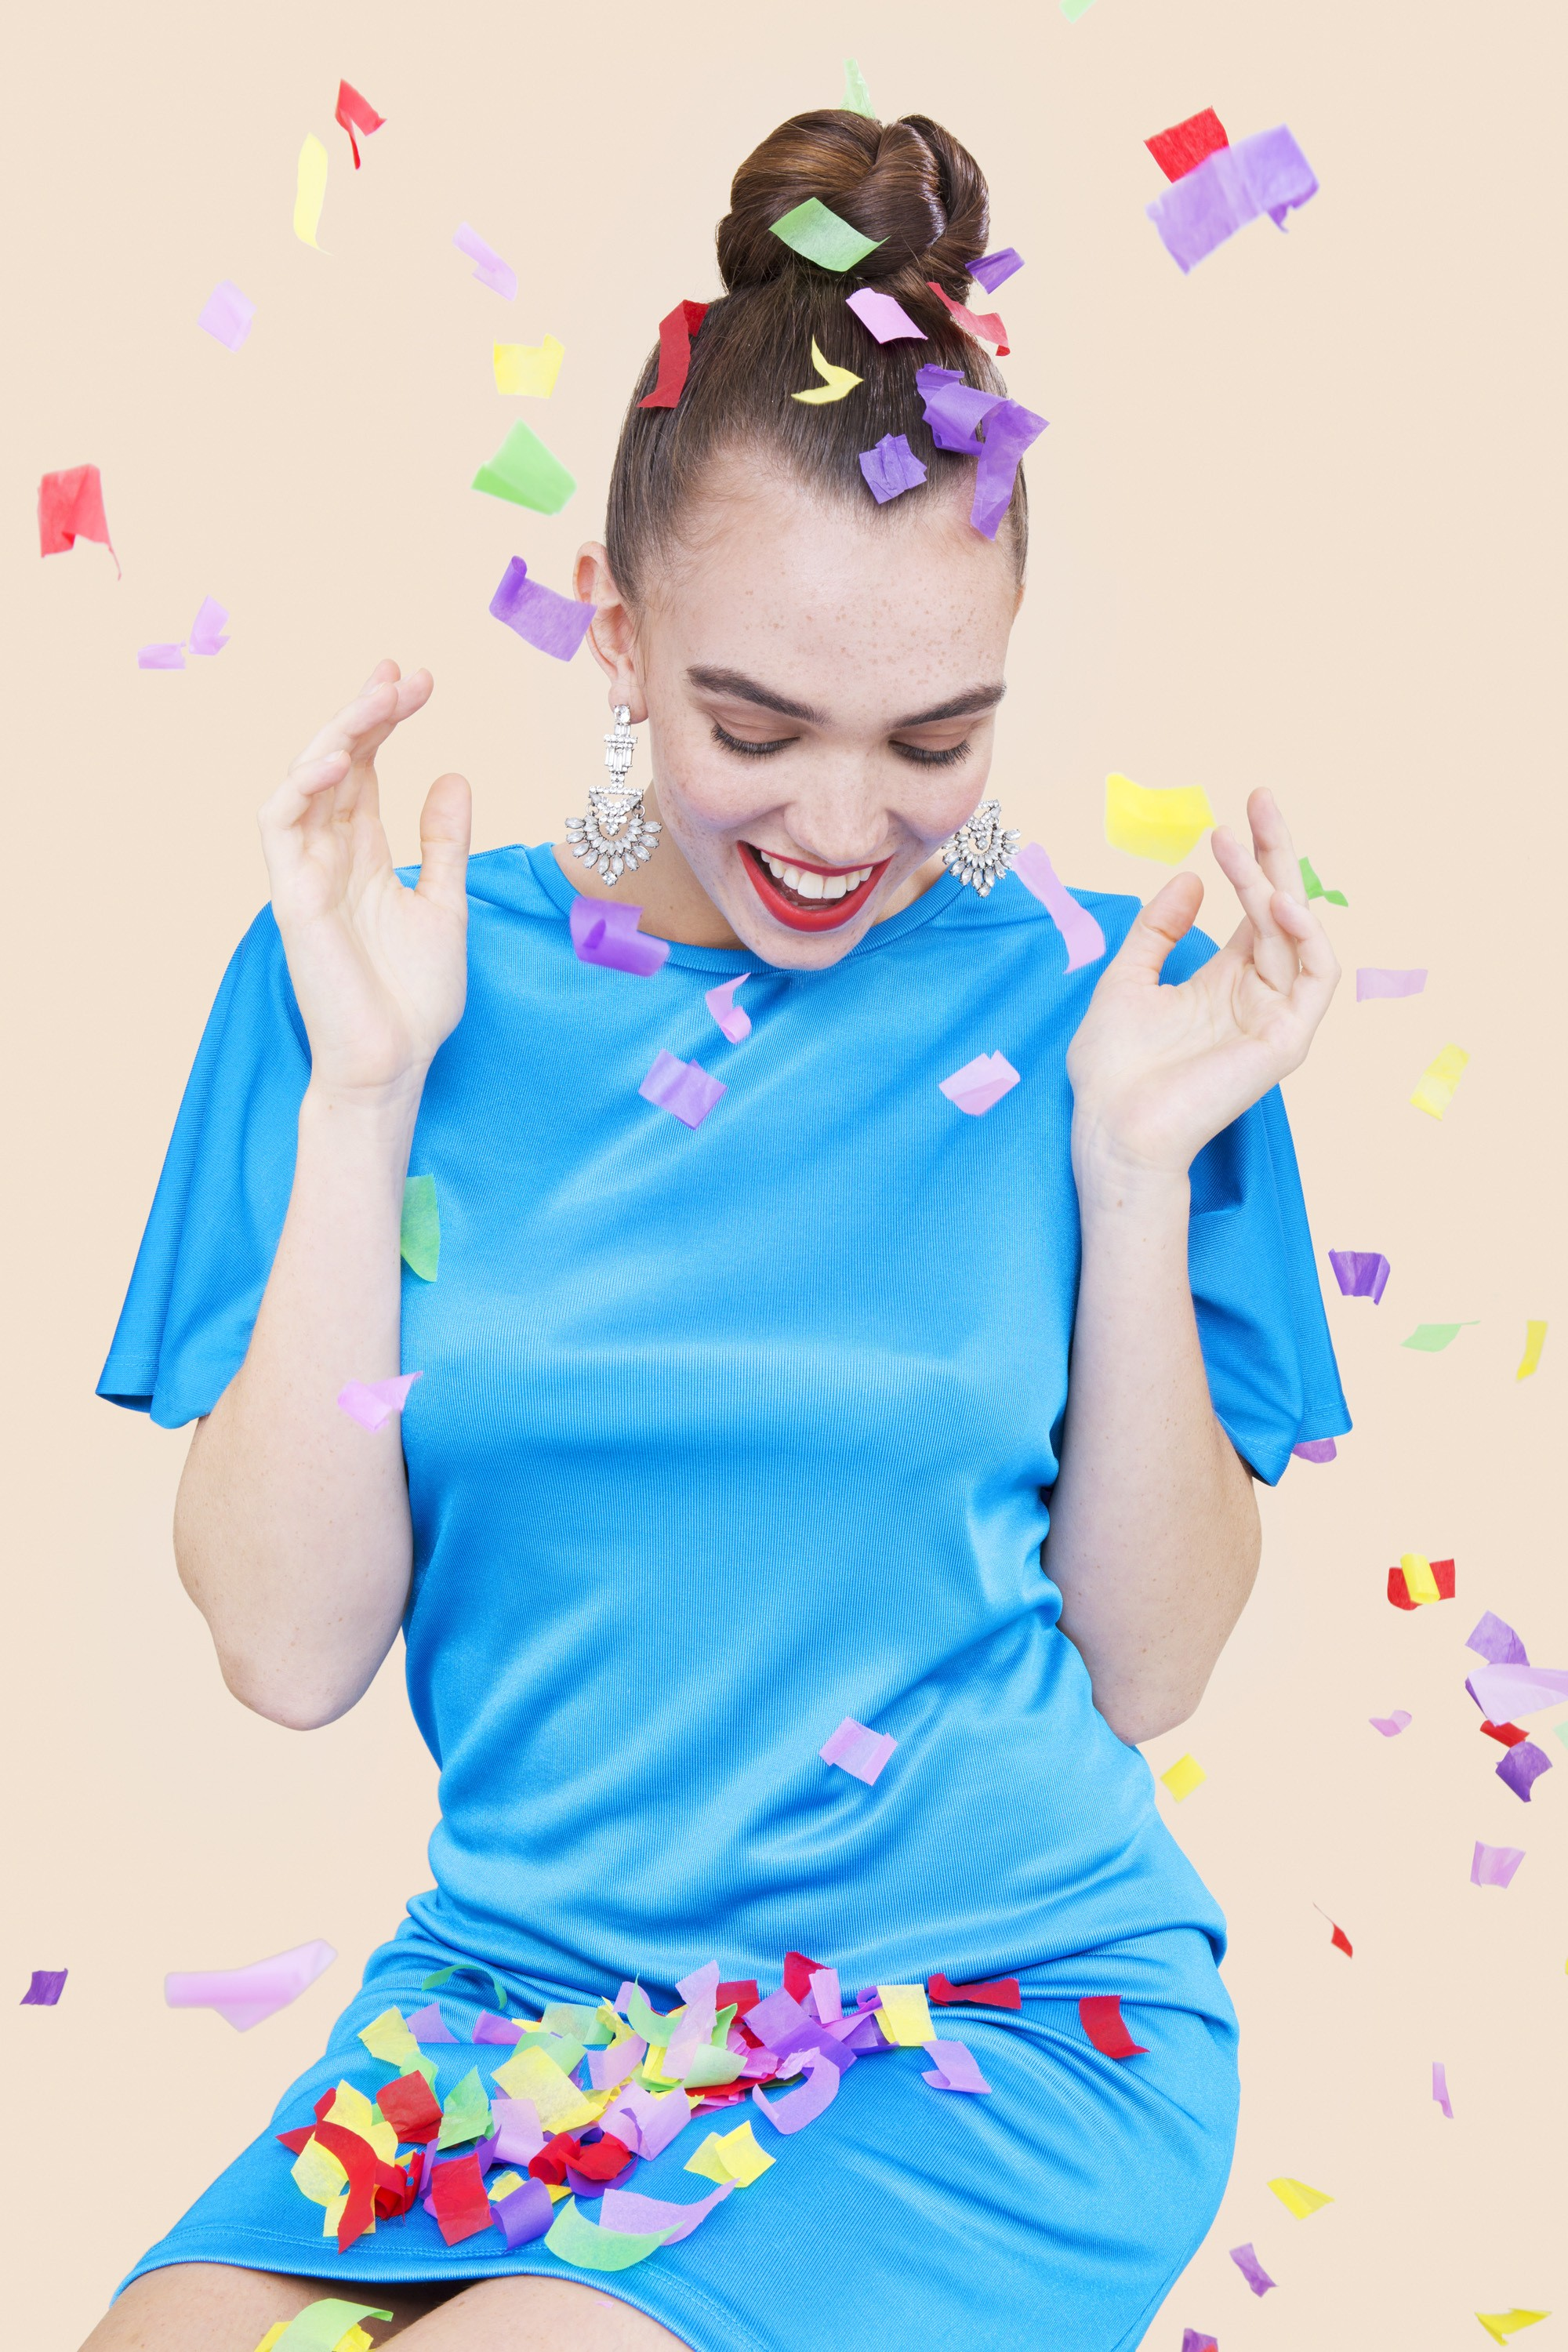 shot of model in a studio with braided bun hairstyle, wearing blue dress, with party poppers everywhere